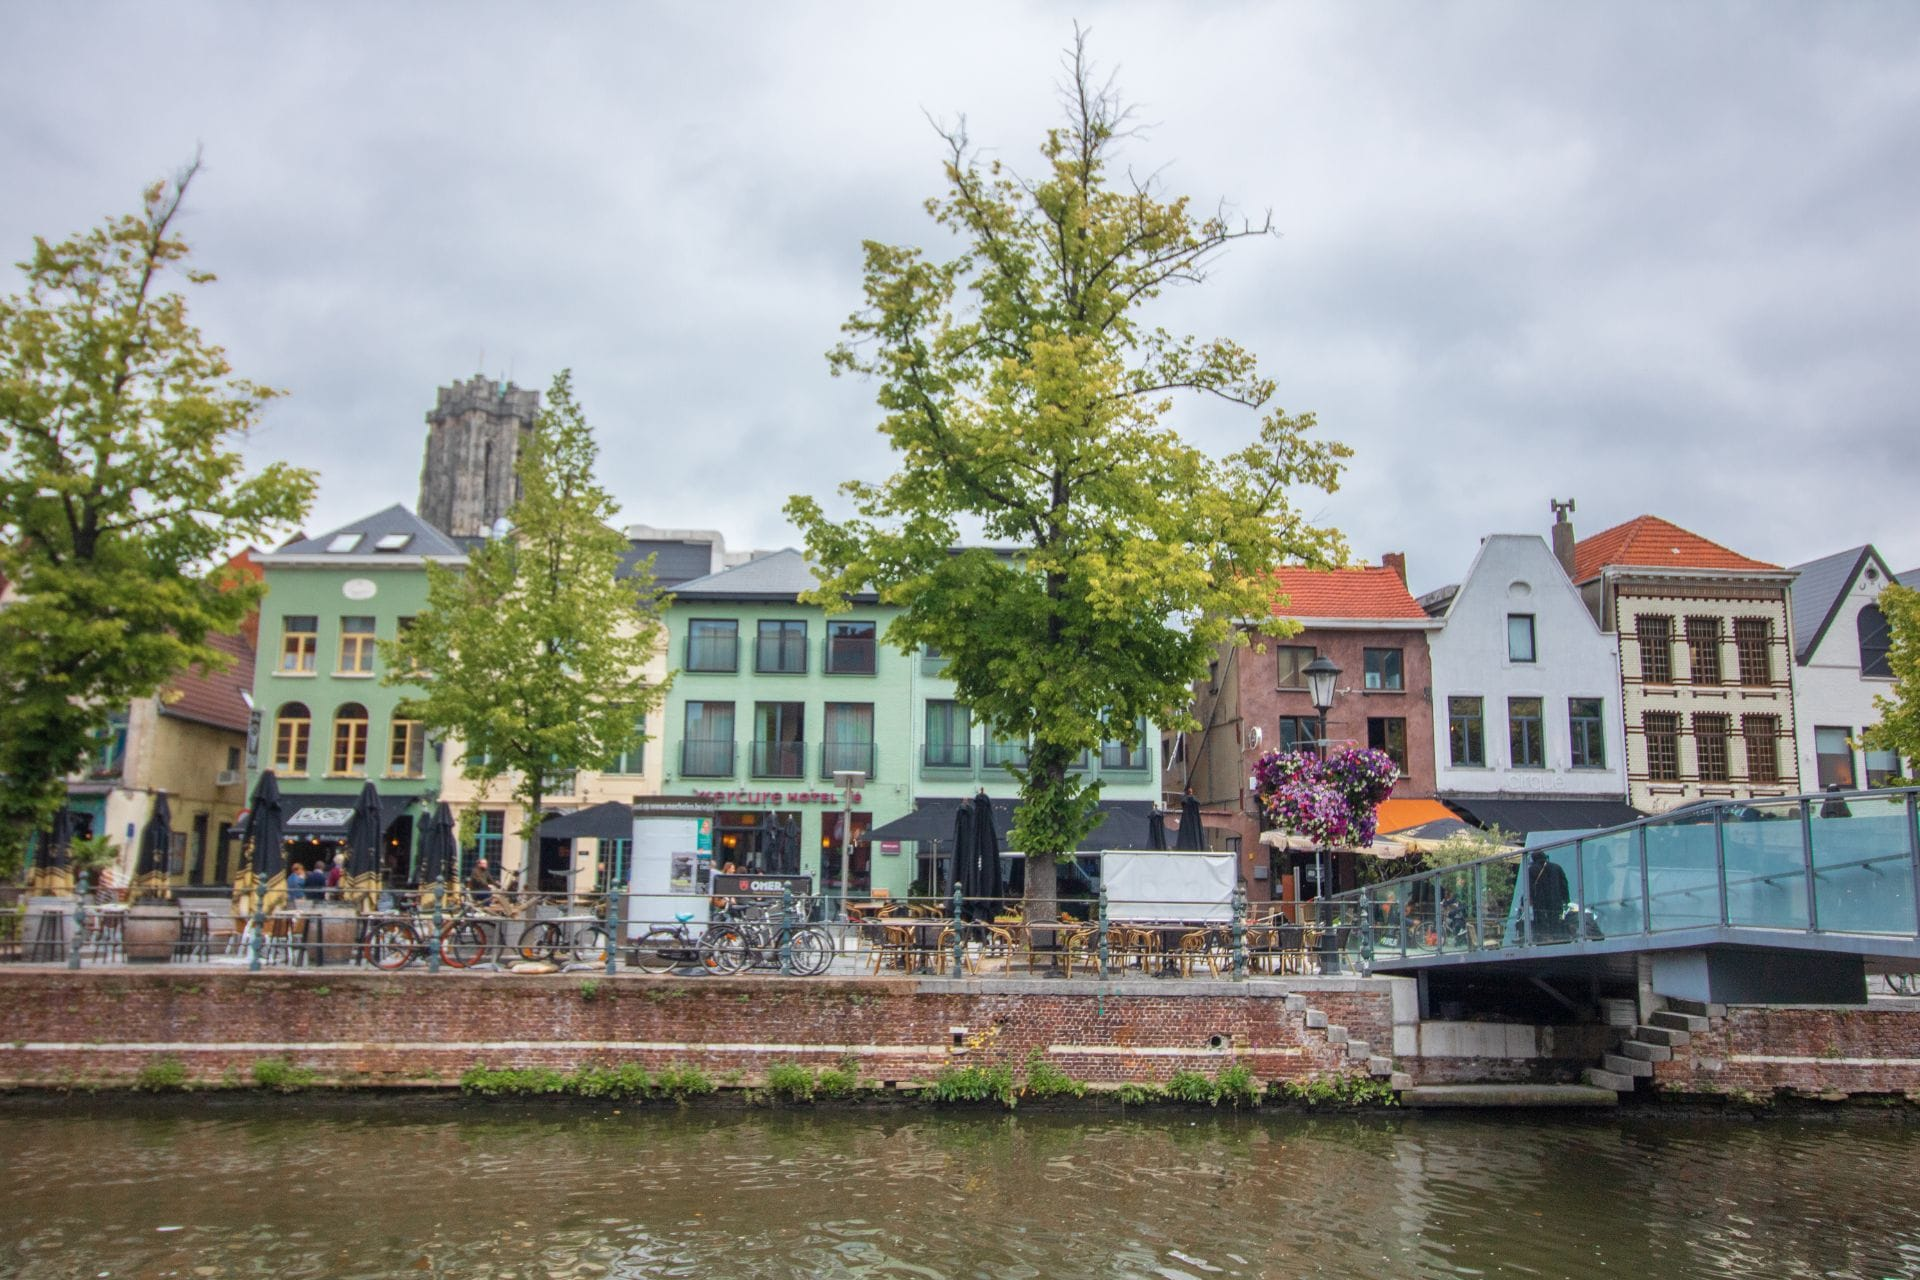 colourful-buildings-housing-restaurants-and-bars-along-the-river-with-a-bridge-crossing-it-vismarkt-mechelen-belgium